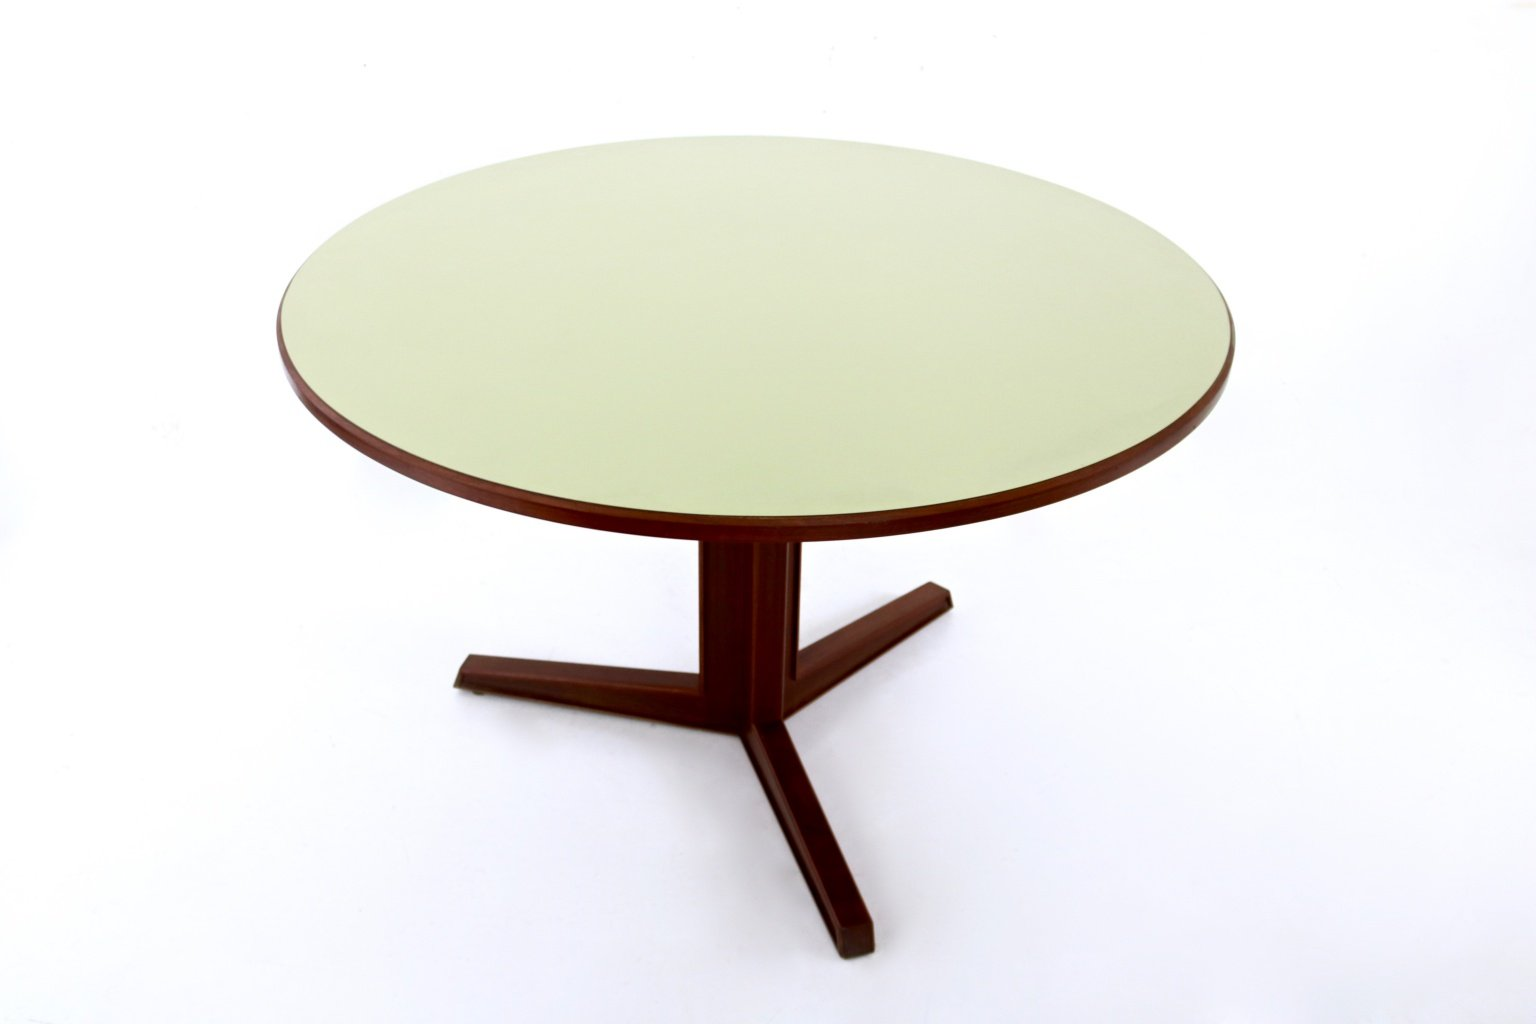 Round Mahogany Formica Dining Table 1970s for sale at Pamono